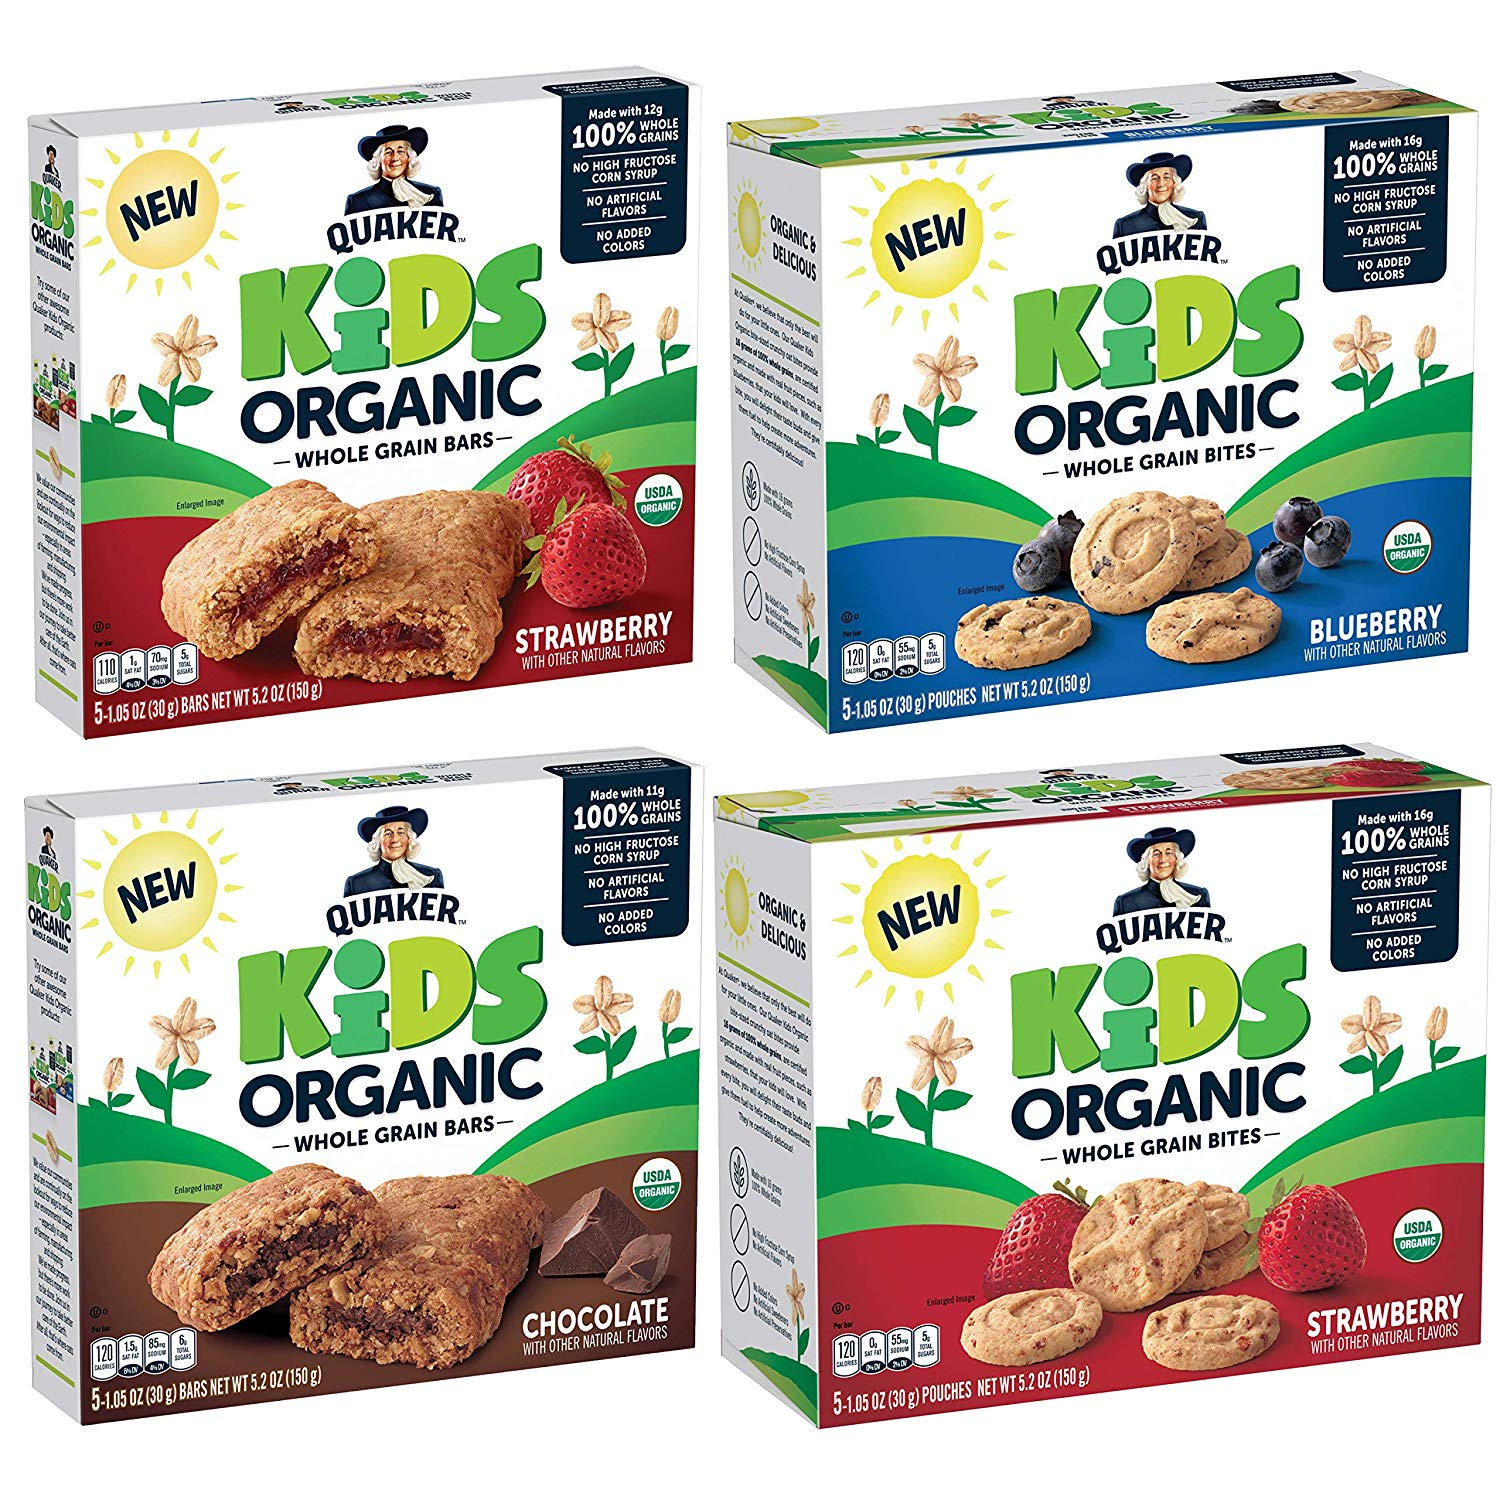 Quaker Kids Organic Whole Grain Bars & Bites Sampler Pack, 1.05 oz Bars & Pouches, 20 Count